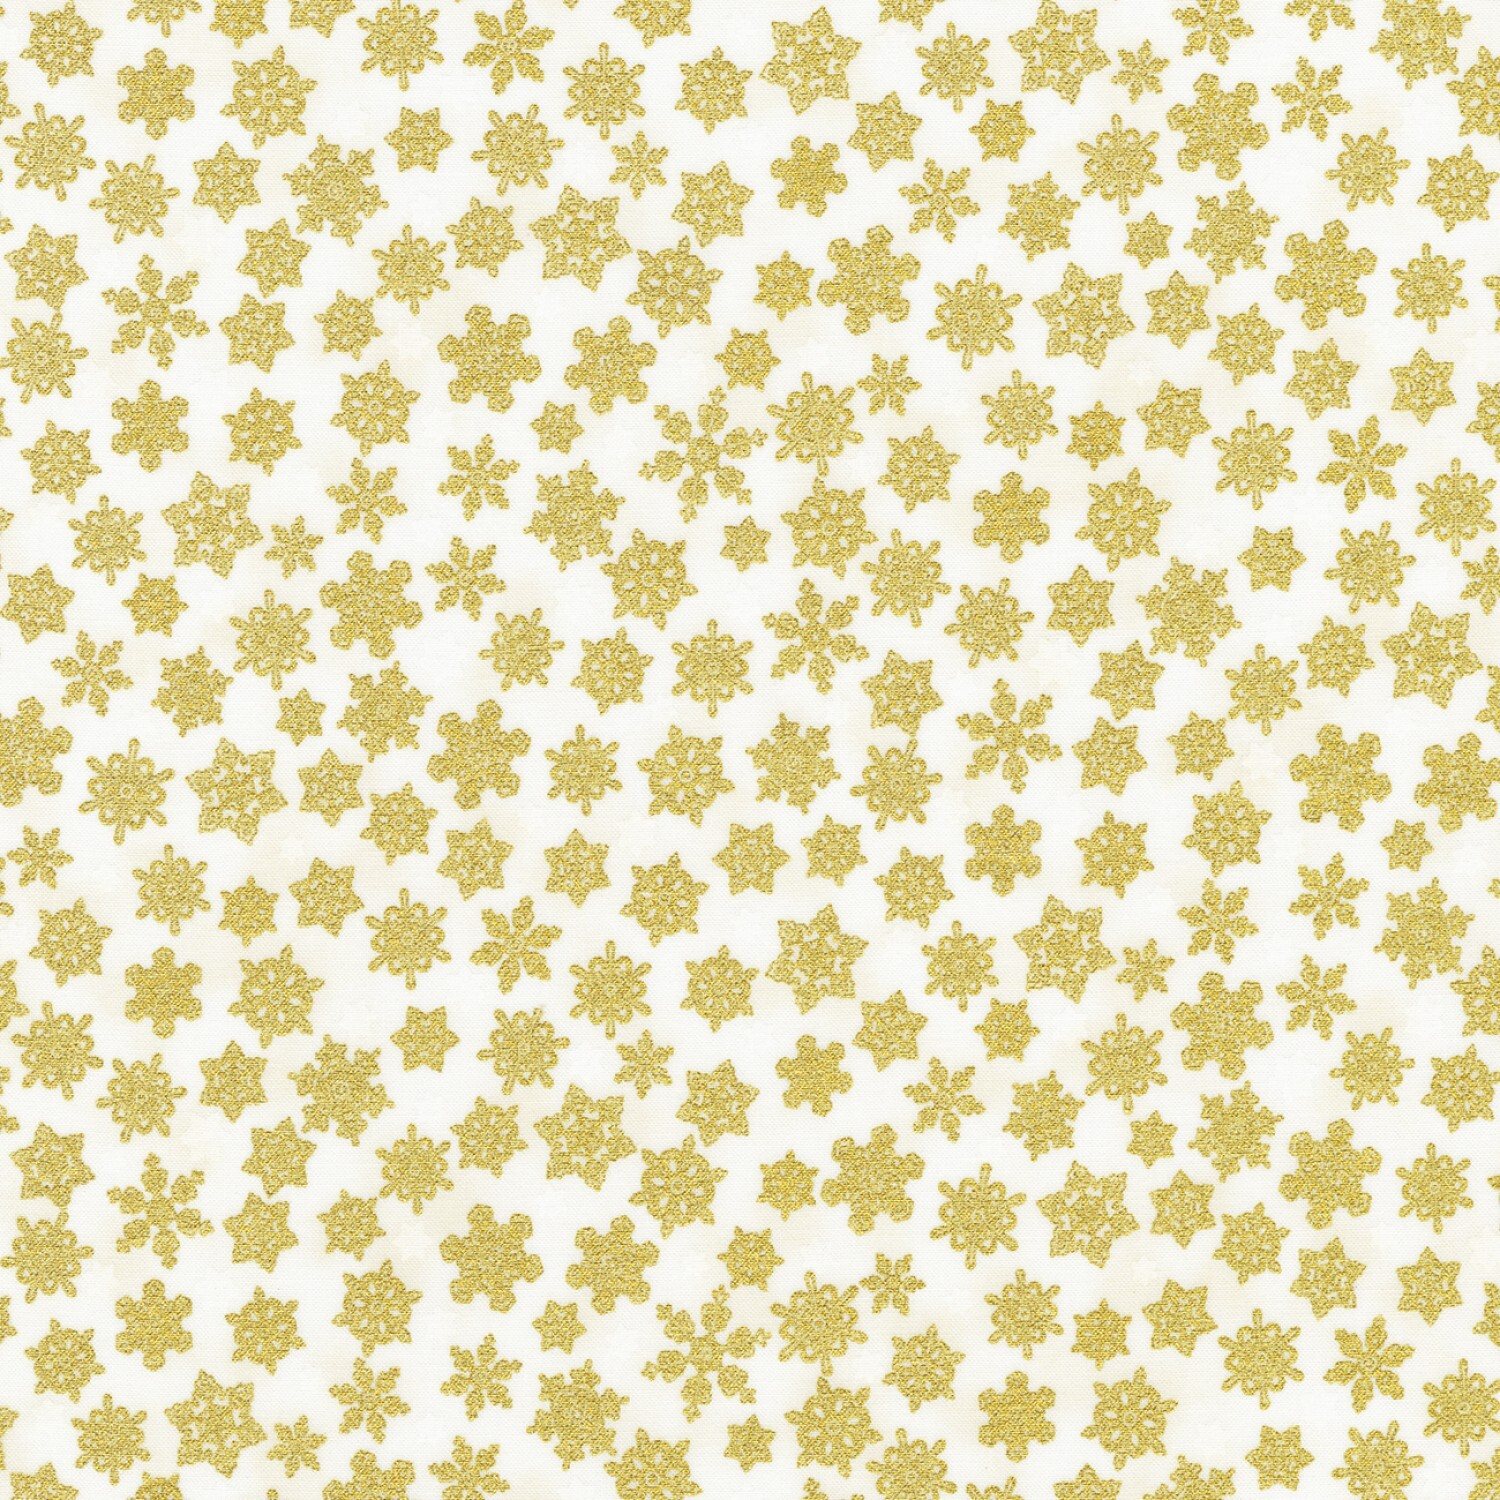 Holiday Charms - Gold Snowflakes on White - 1/2m cut 58118